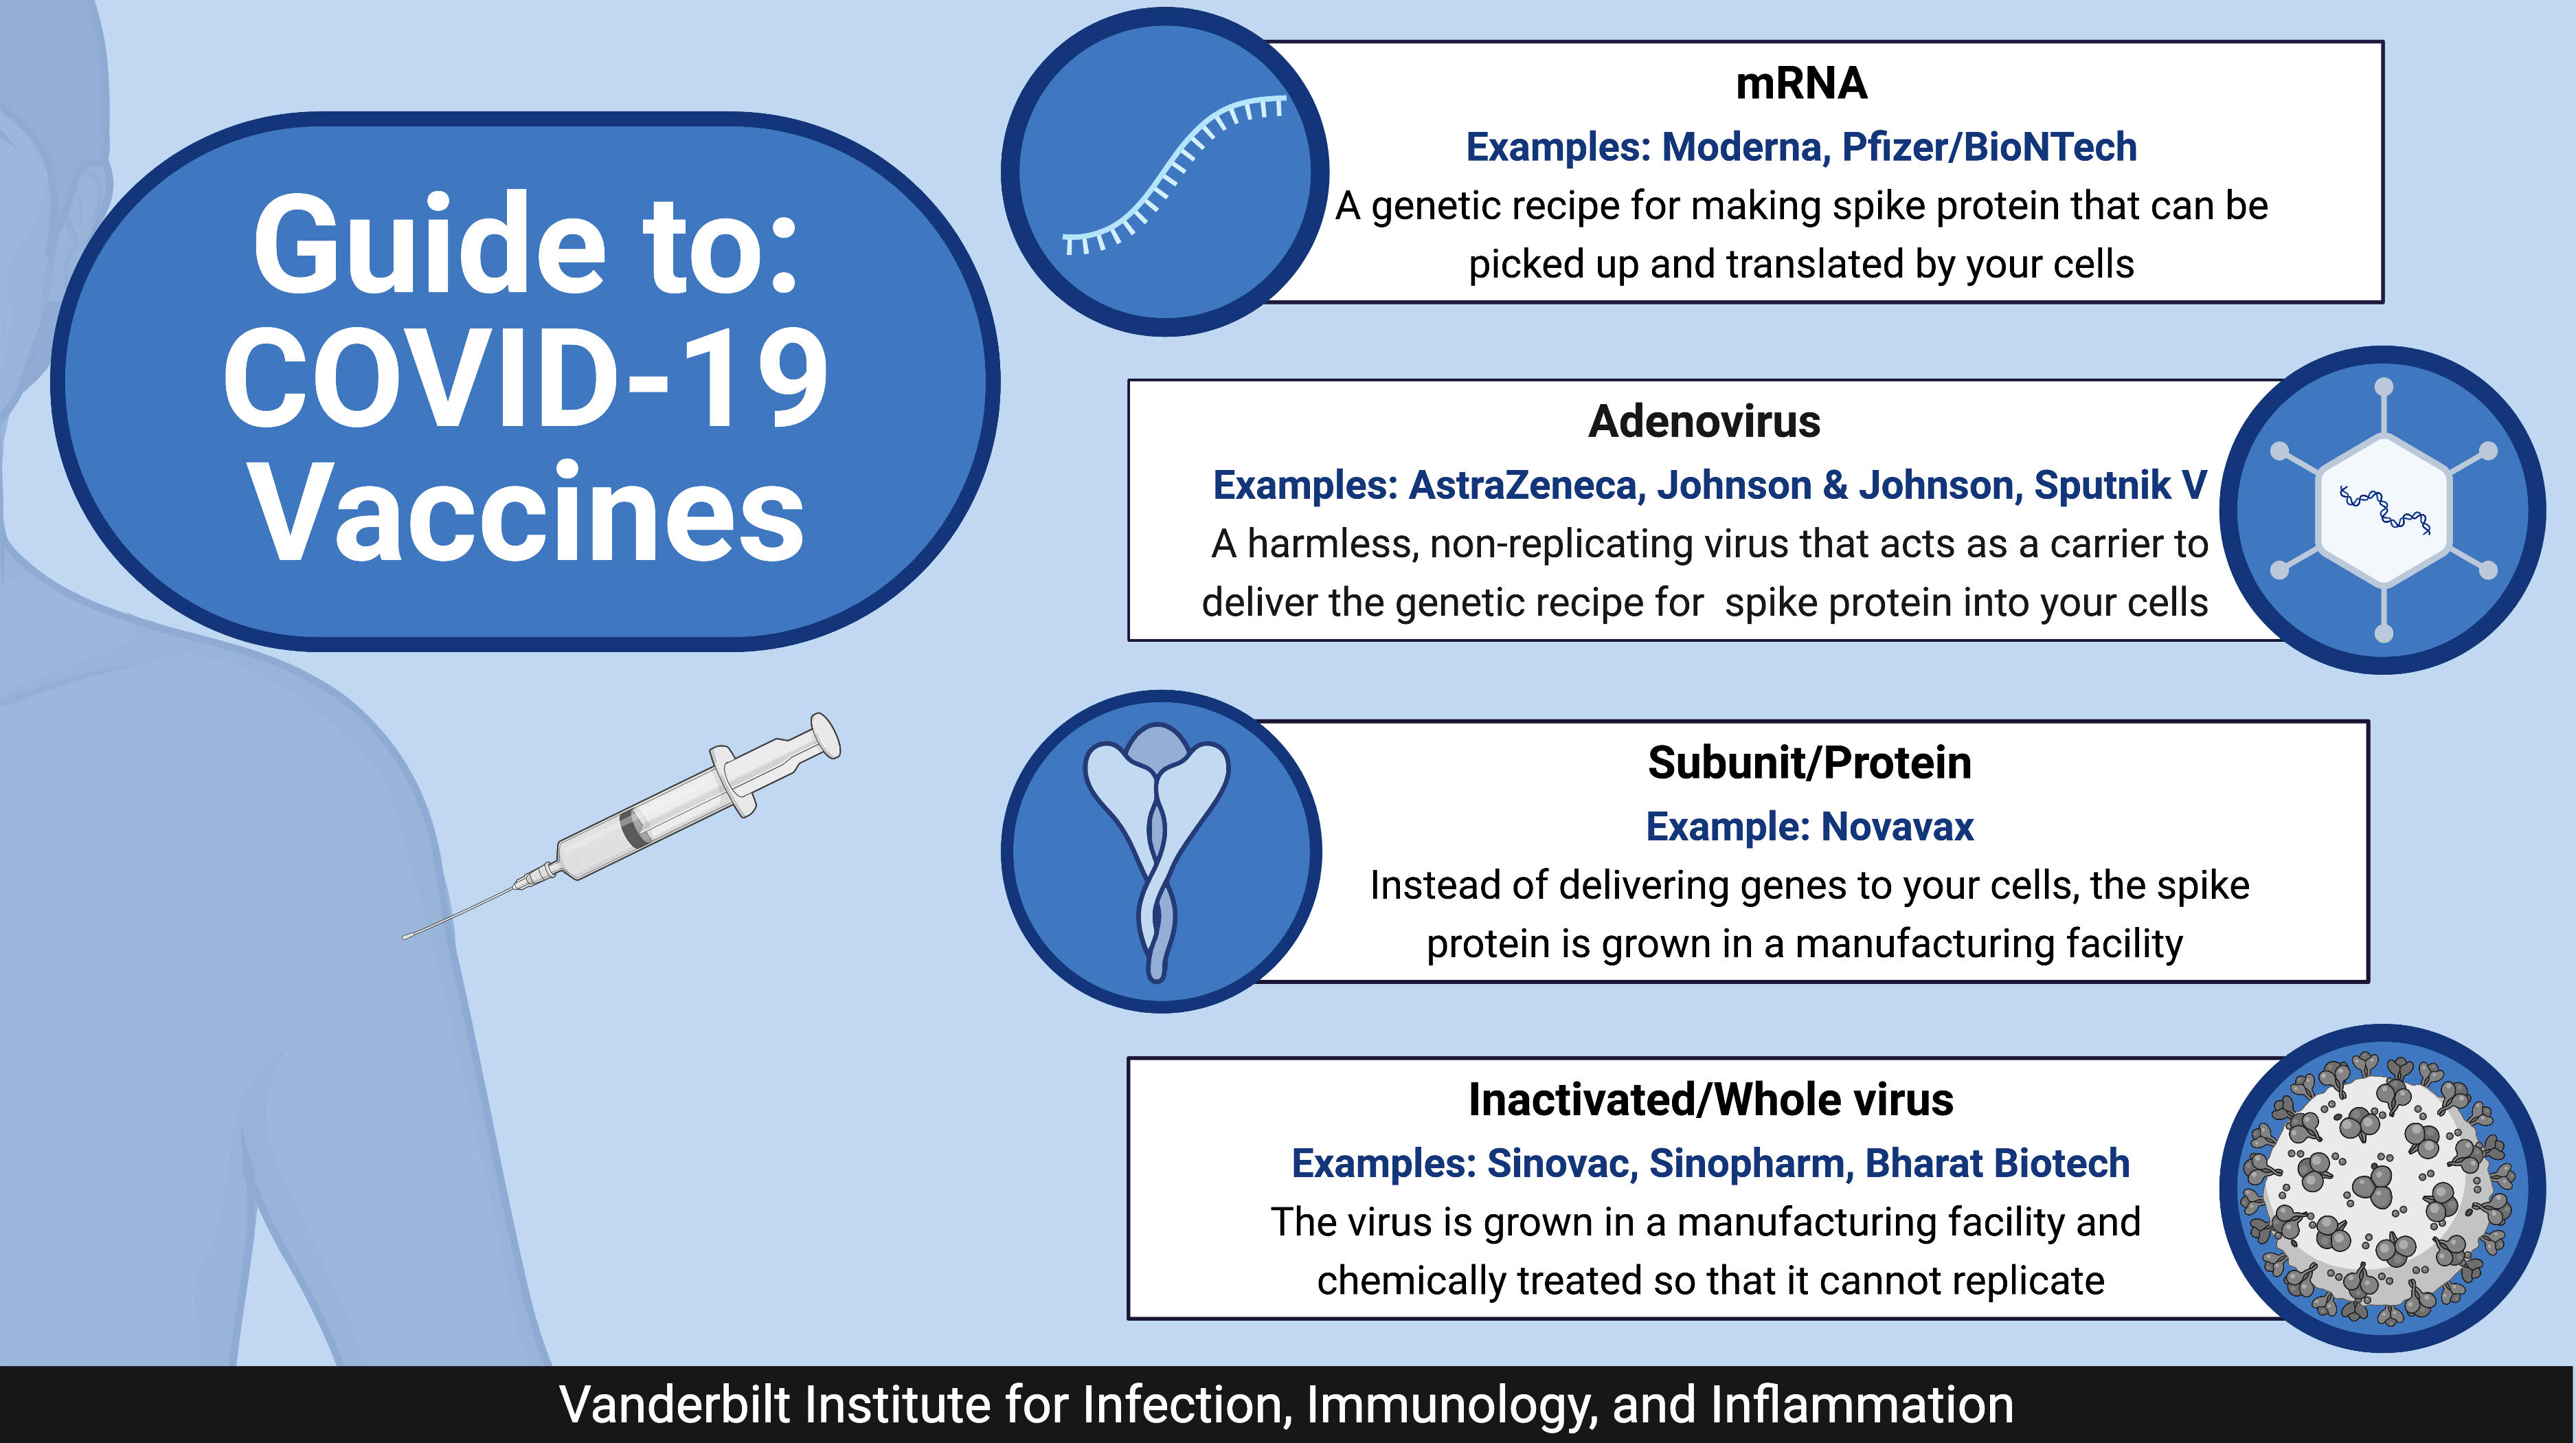 Guide to: COVID-19 Vaccines